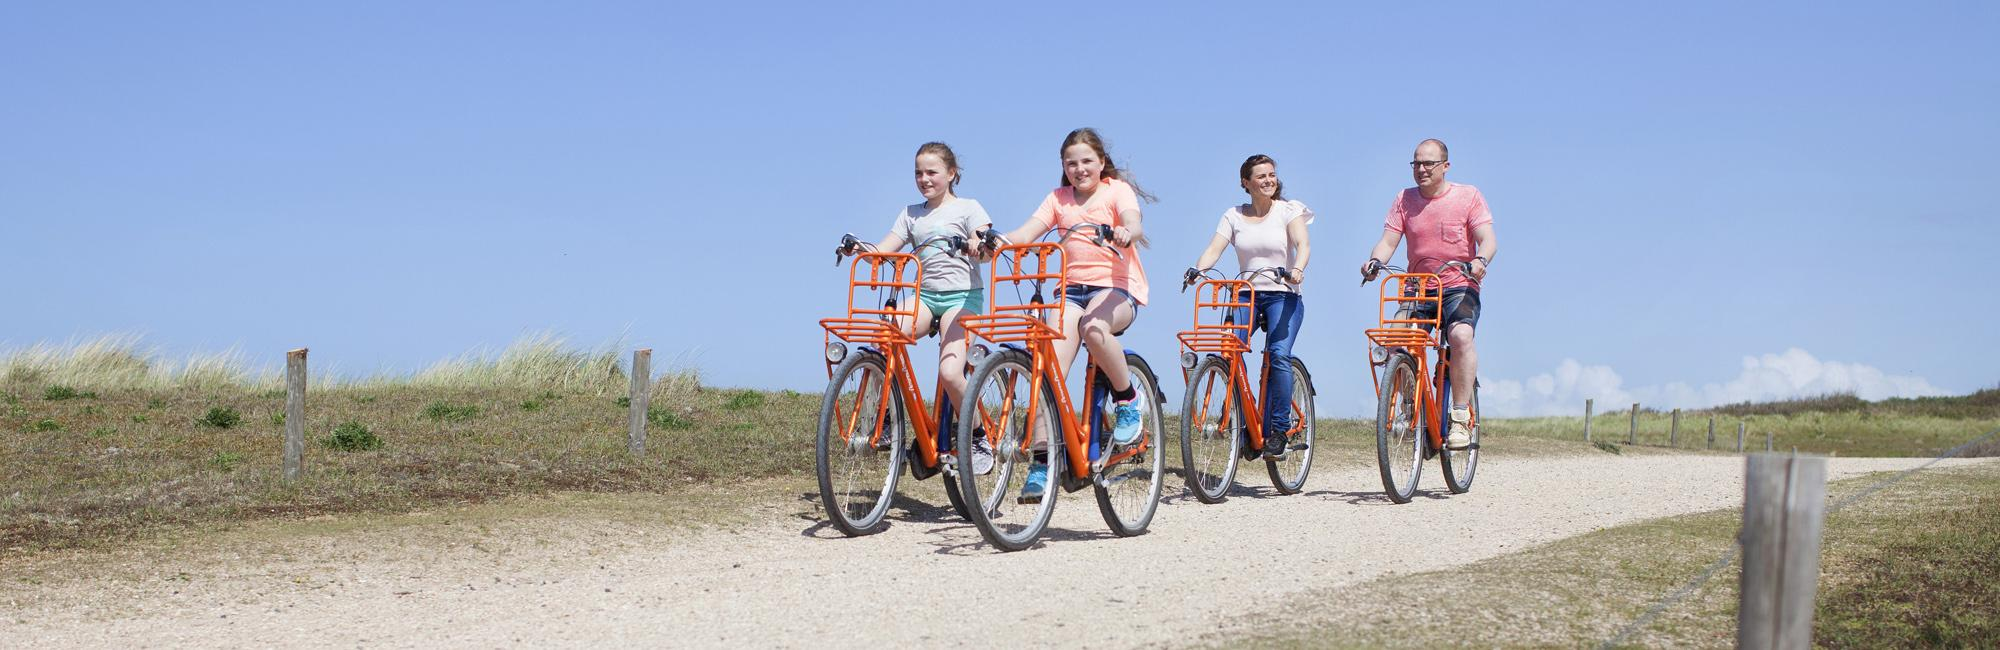 Family cycling in Holland by the beach